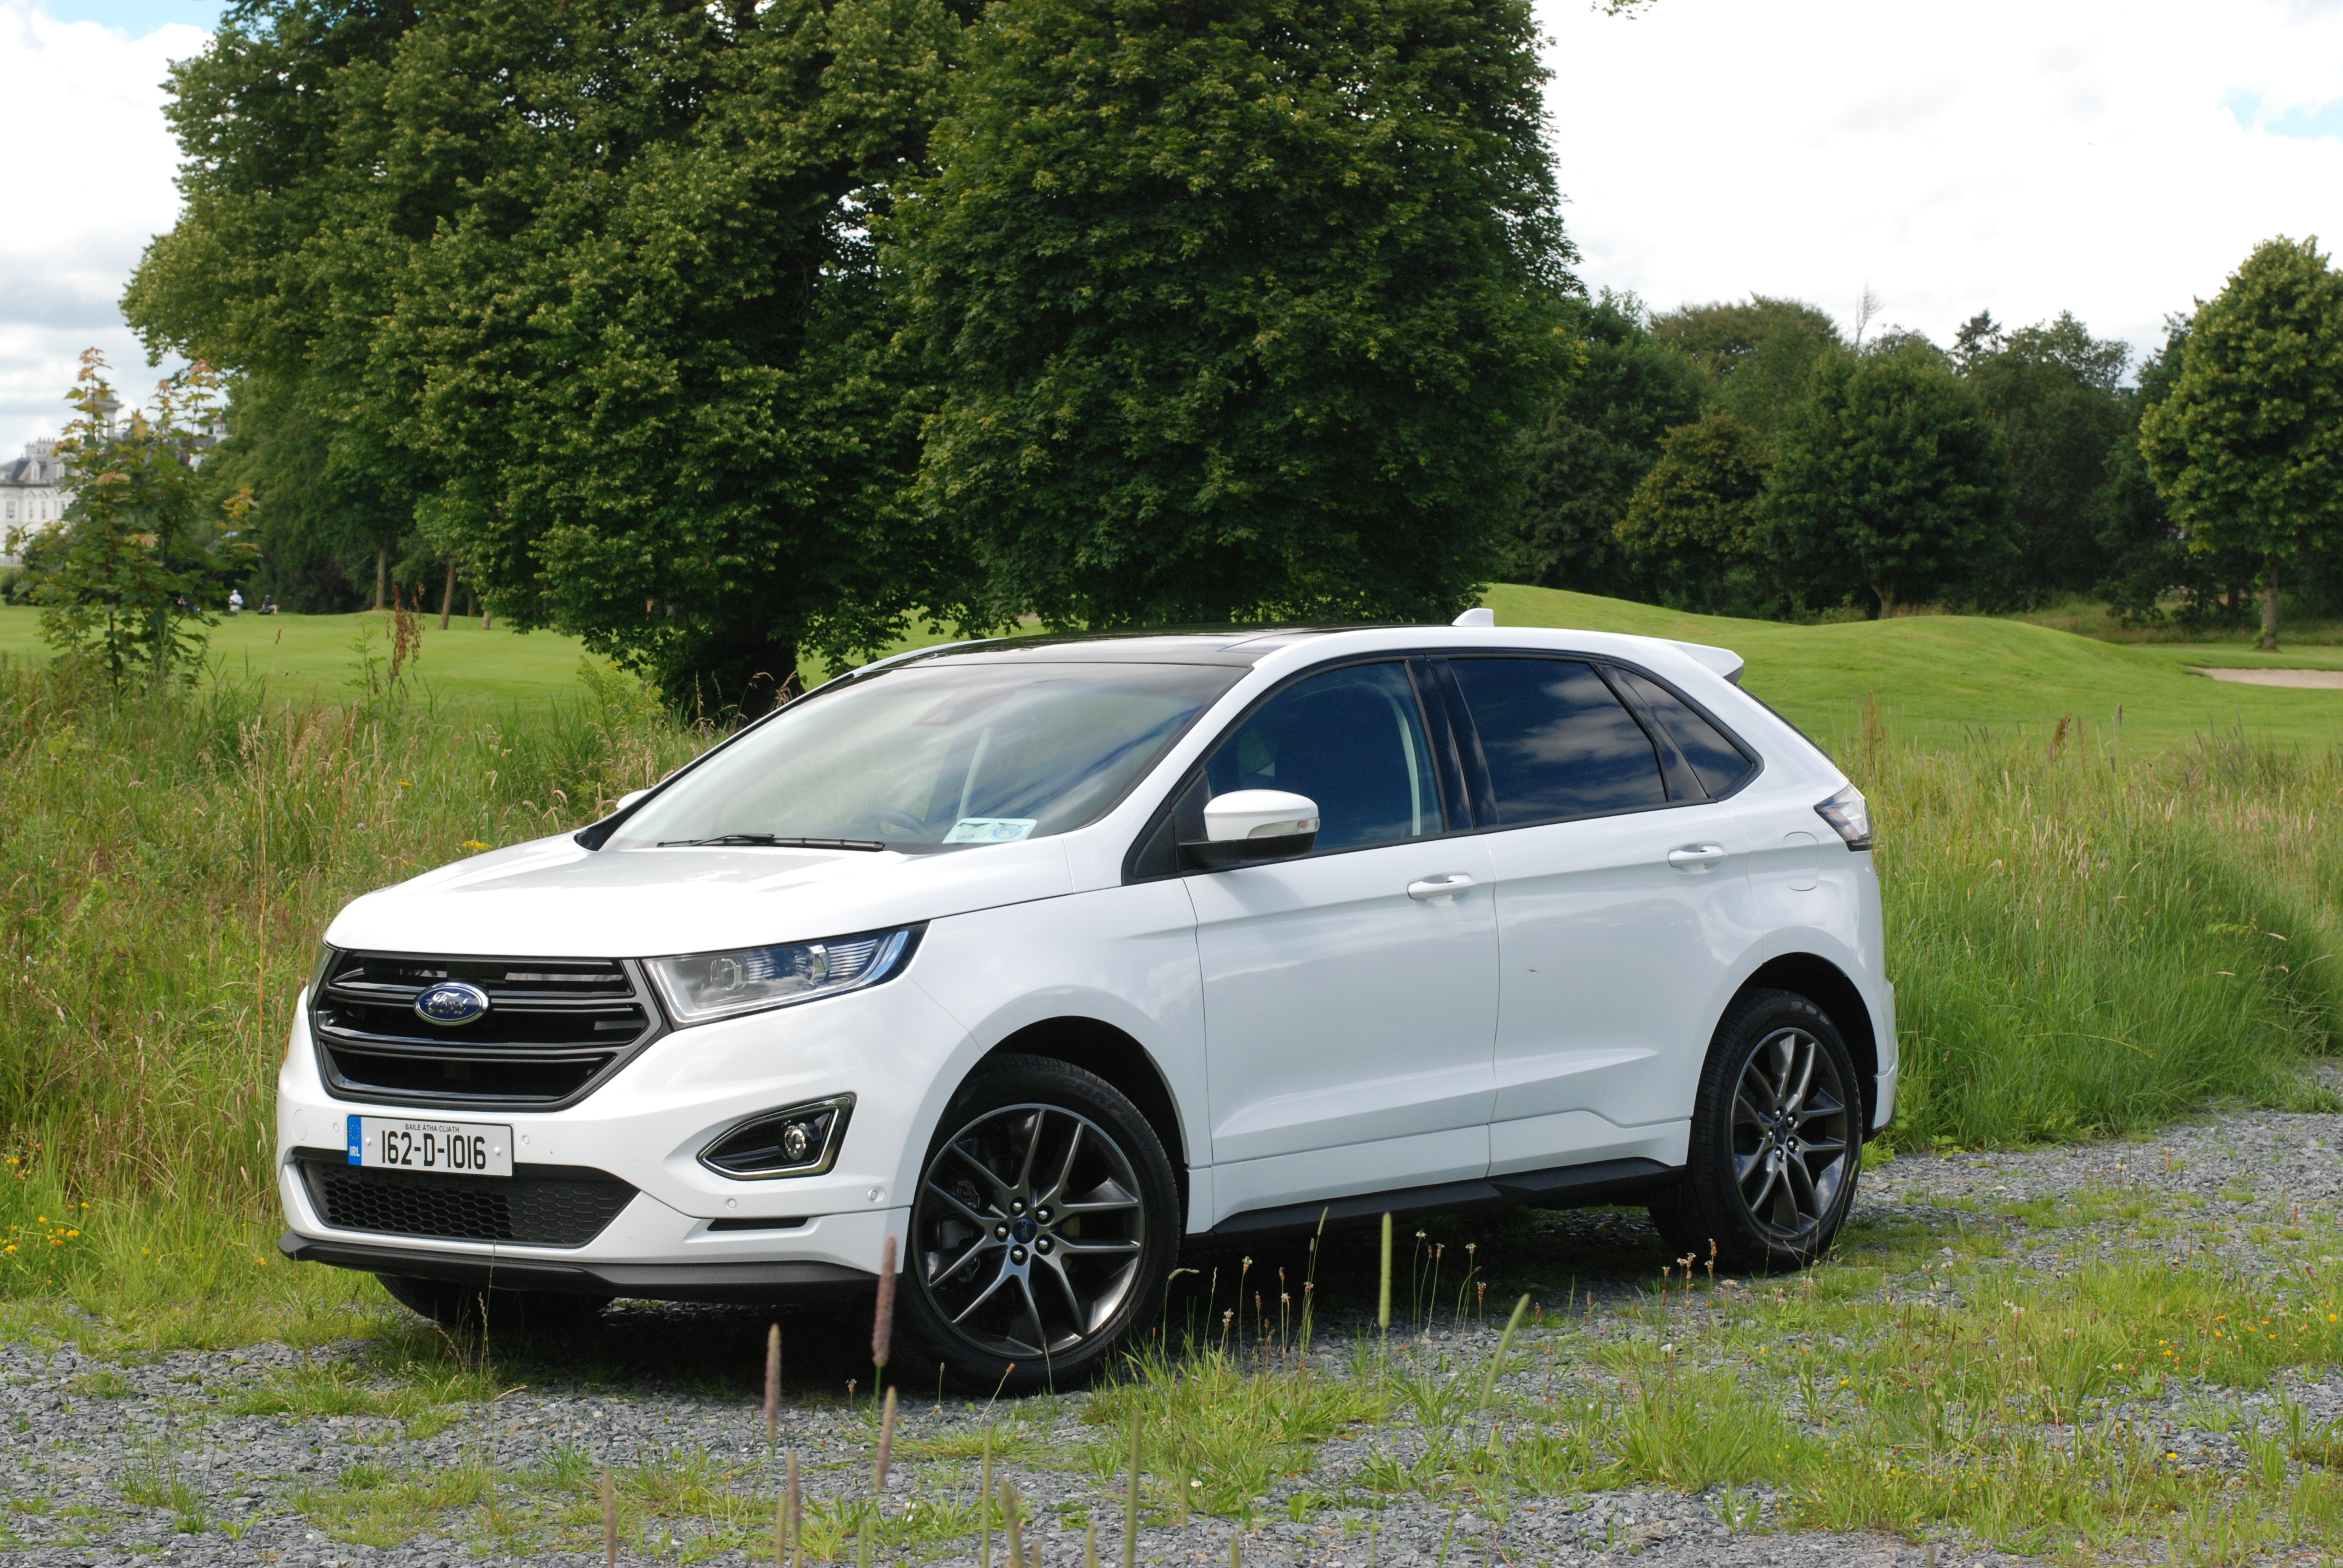 The All New Ford Edge Received Its Irish Launch Yesterday The Edge Has Been Available In The States For A Number Of Years Where Last Year Ford Sold